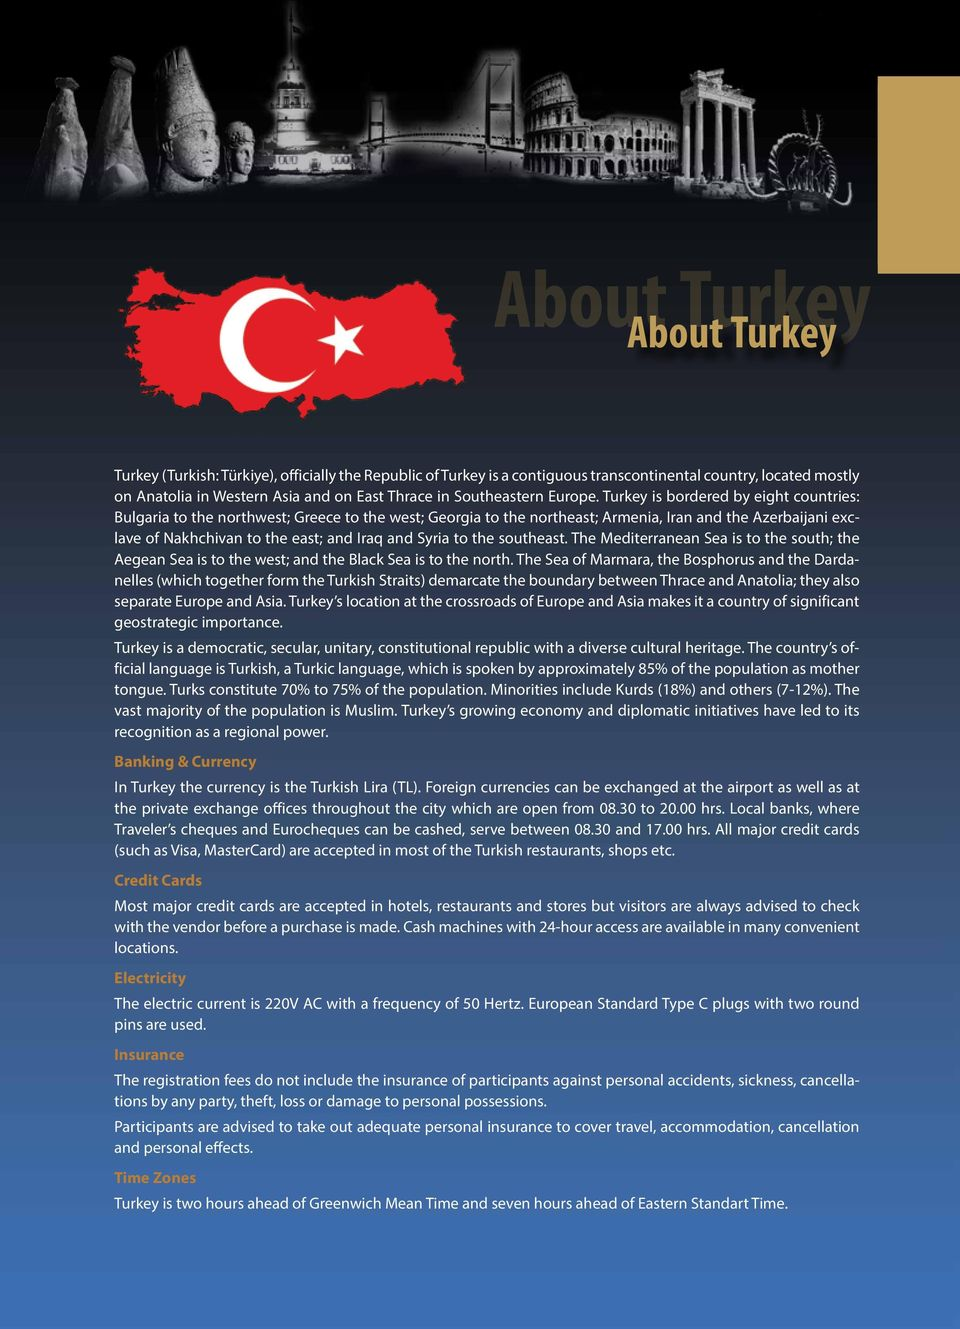 Turkey is bordered by eight countries: Bulgaria to the northwest; Greece to the west; Georgia to the northeast; Armenia, Iran and the Azerbaijani exclave of Nakhchivan to the east; and Iraq and Syria